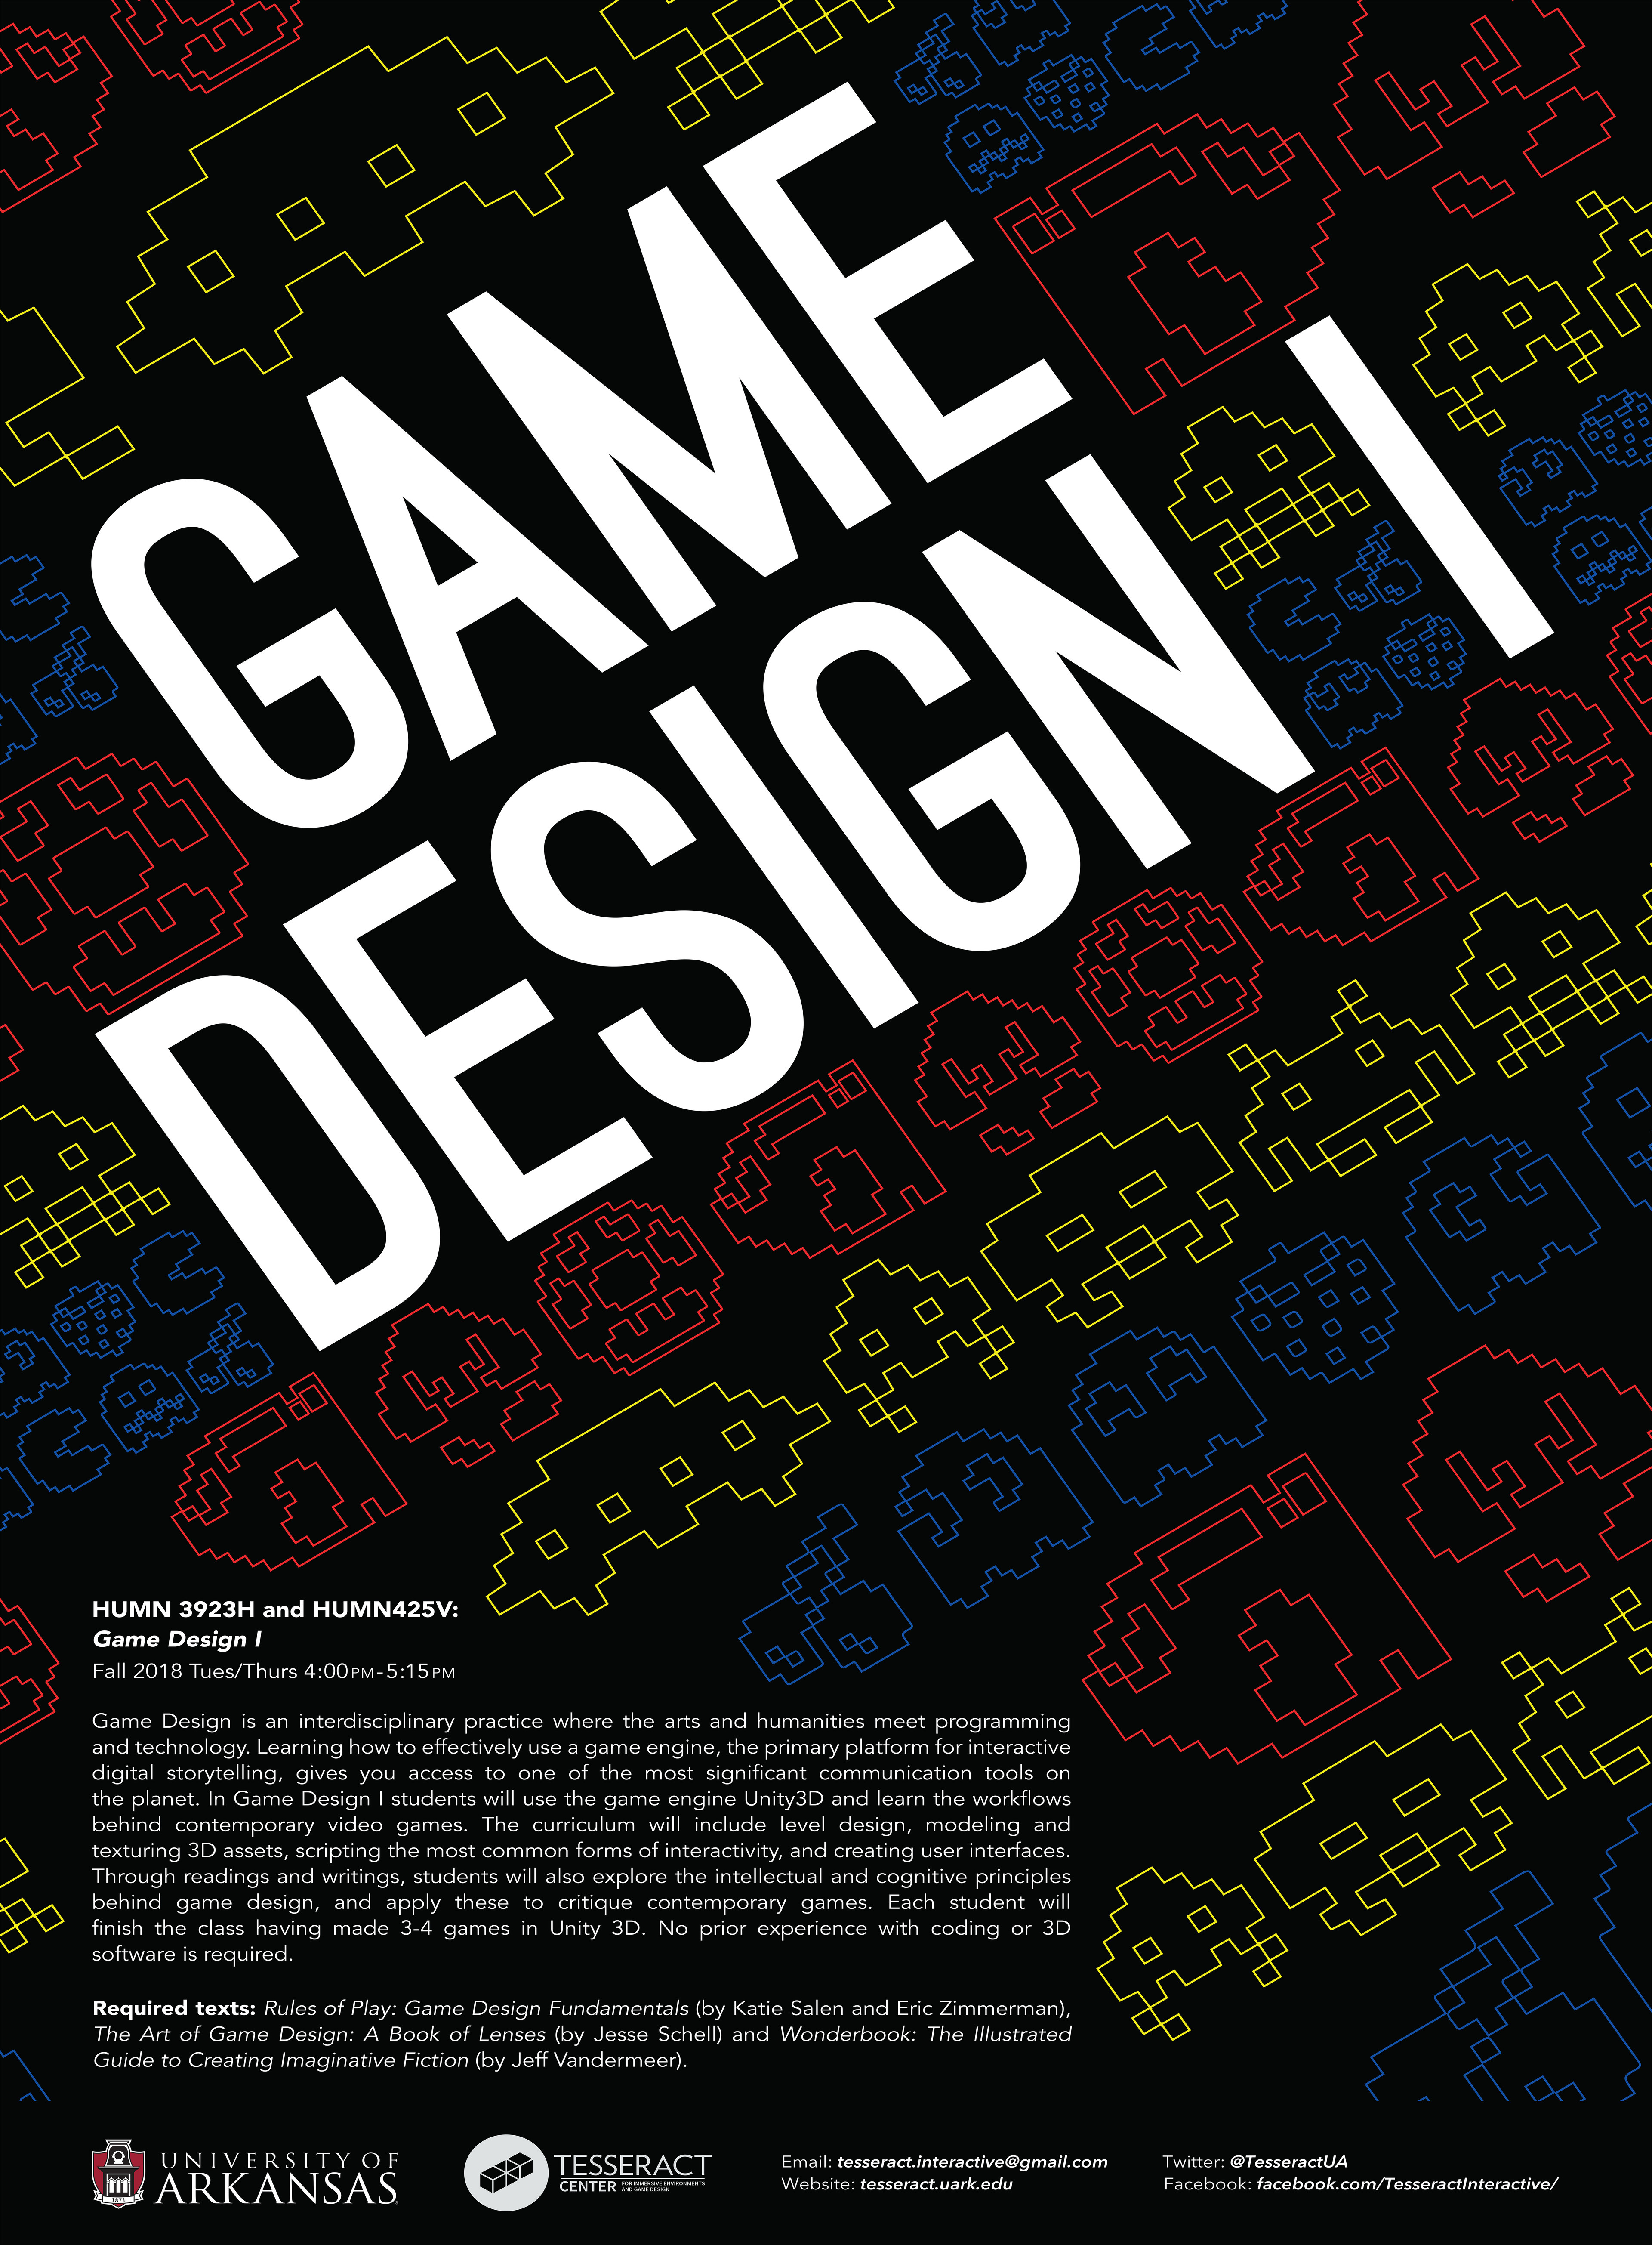 Poster for the Tesseract Center's Game Design I class, where students are introduced to the basics of Game Design as well as introduced to all multiple aspects of game creation in the Unity Engine.